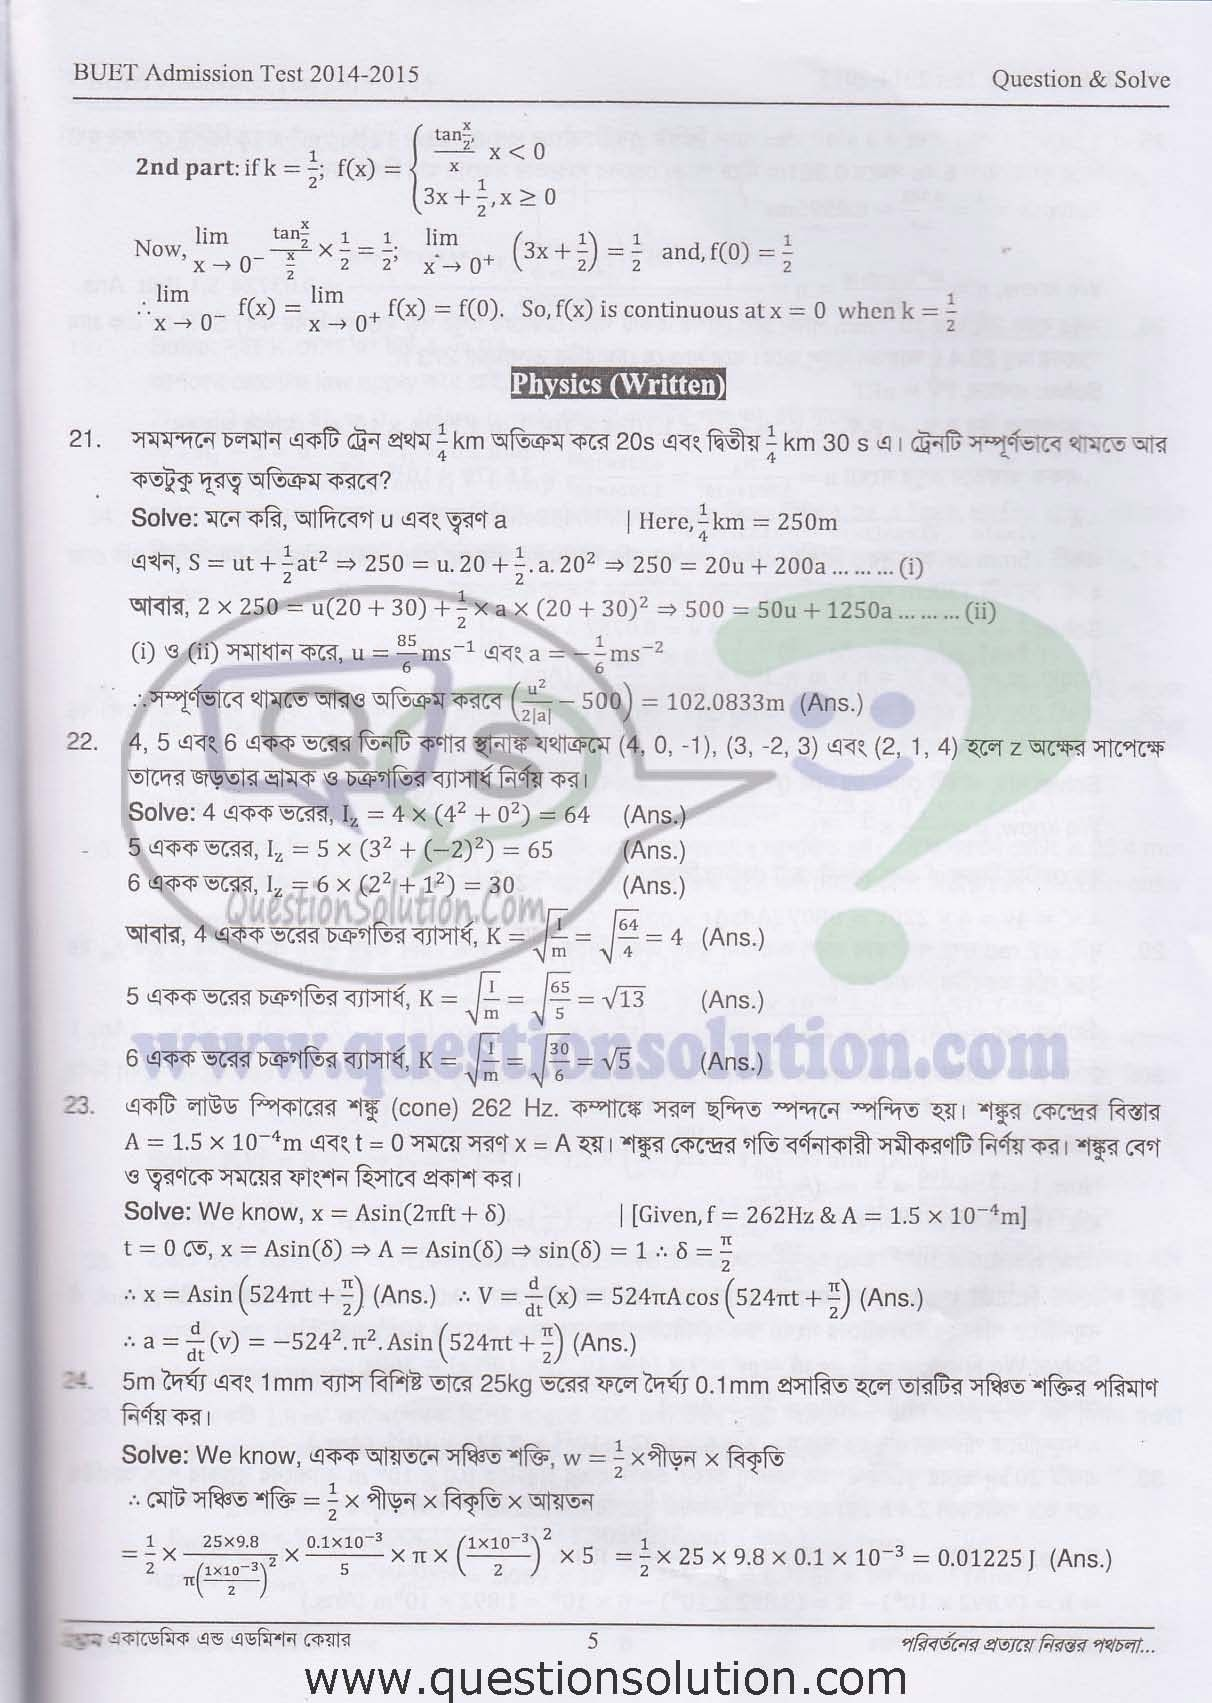 BUET Admission Test Question Solution 2014-15 | Question Solution Question  And Answer, This